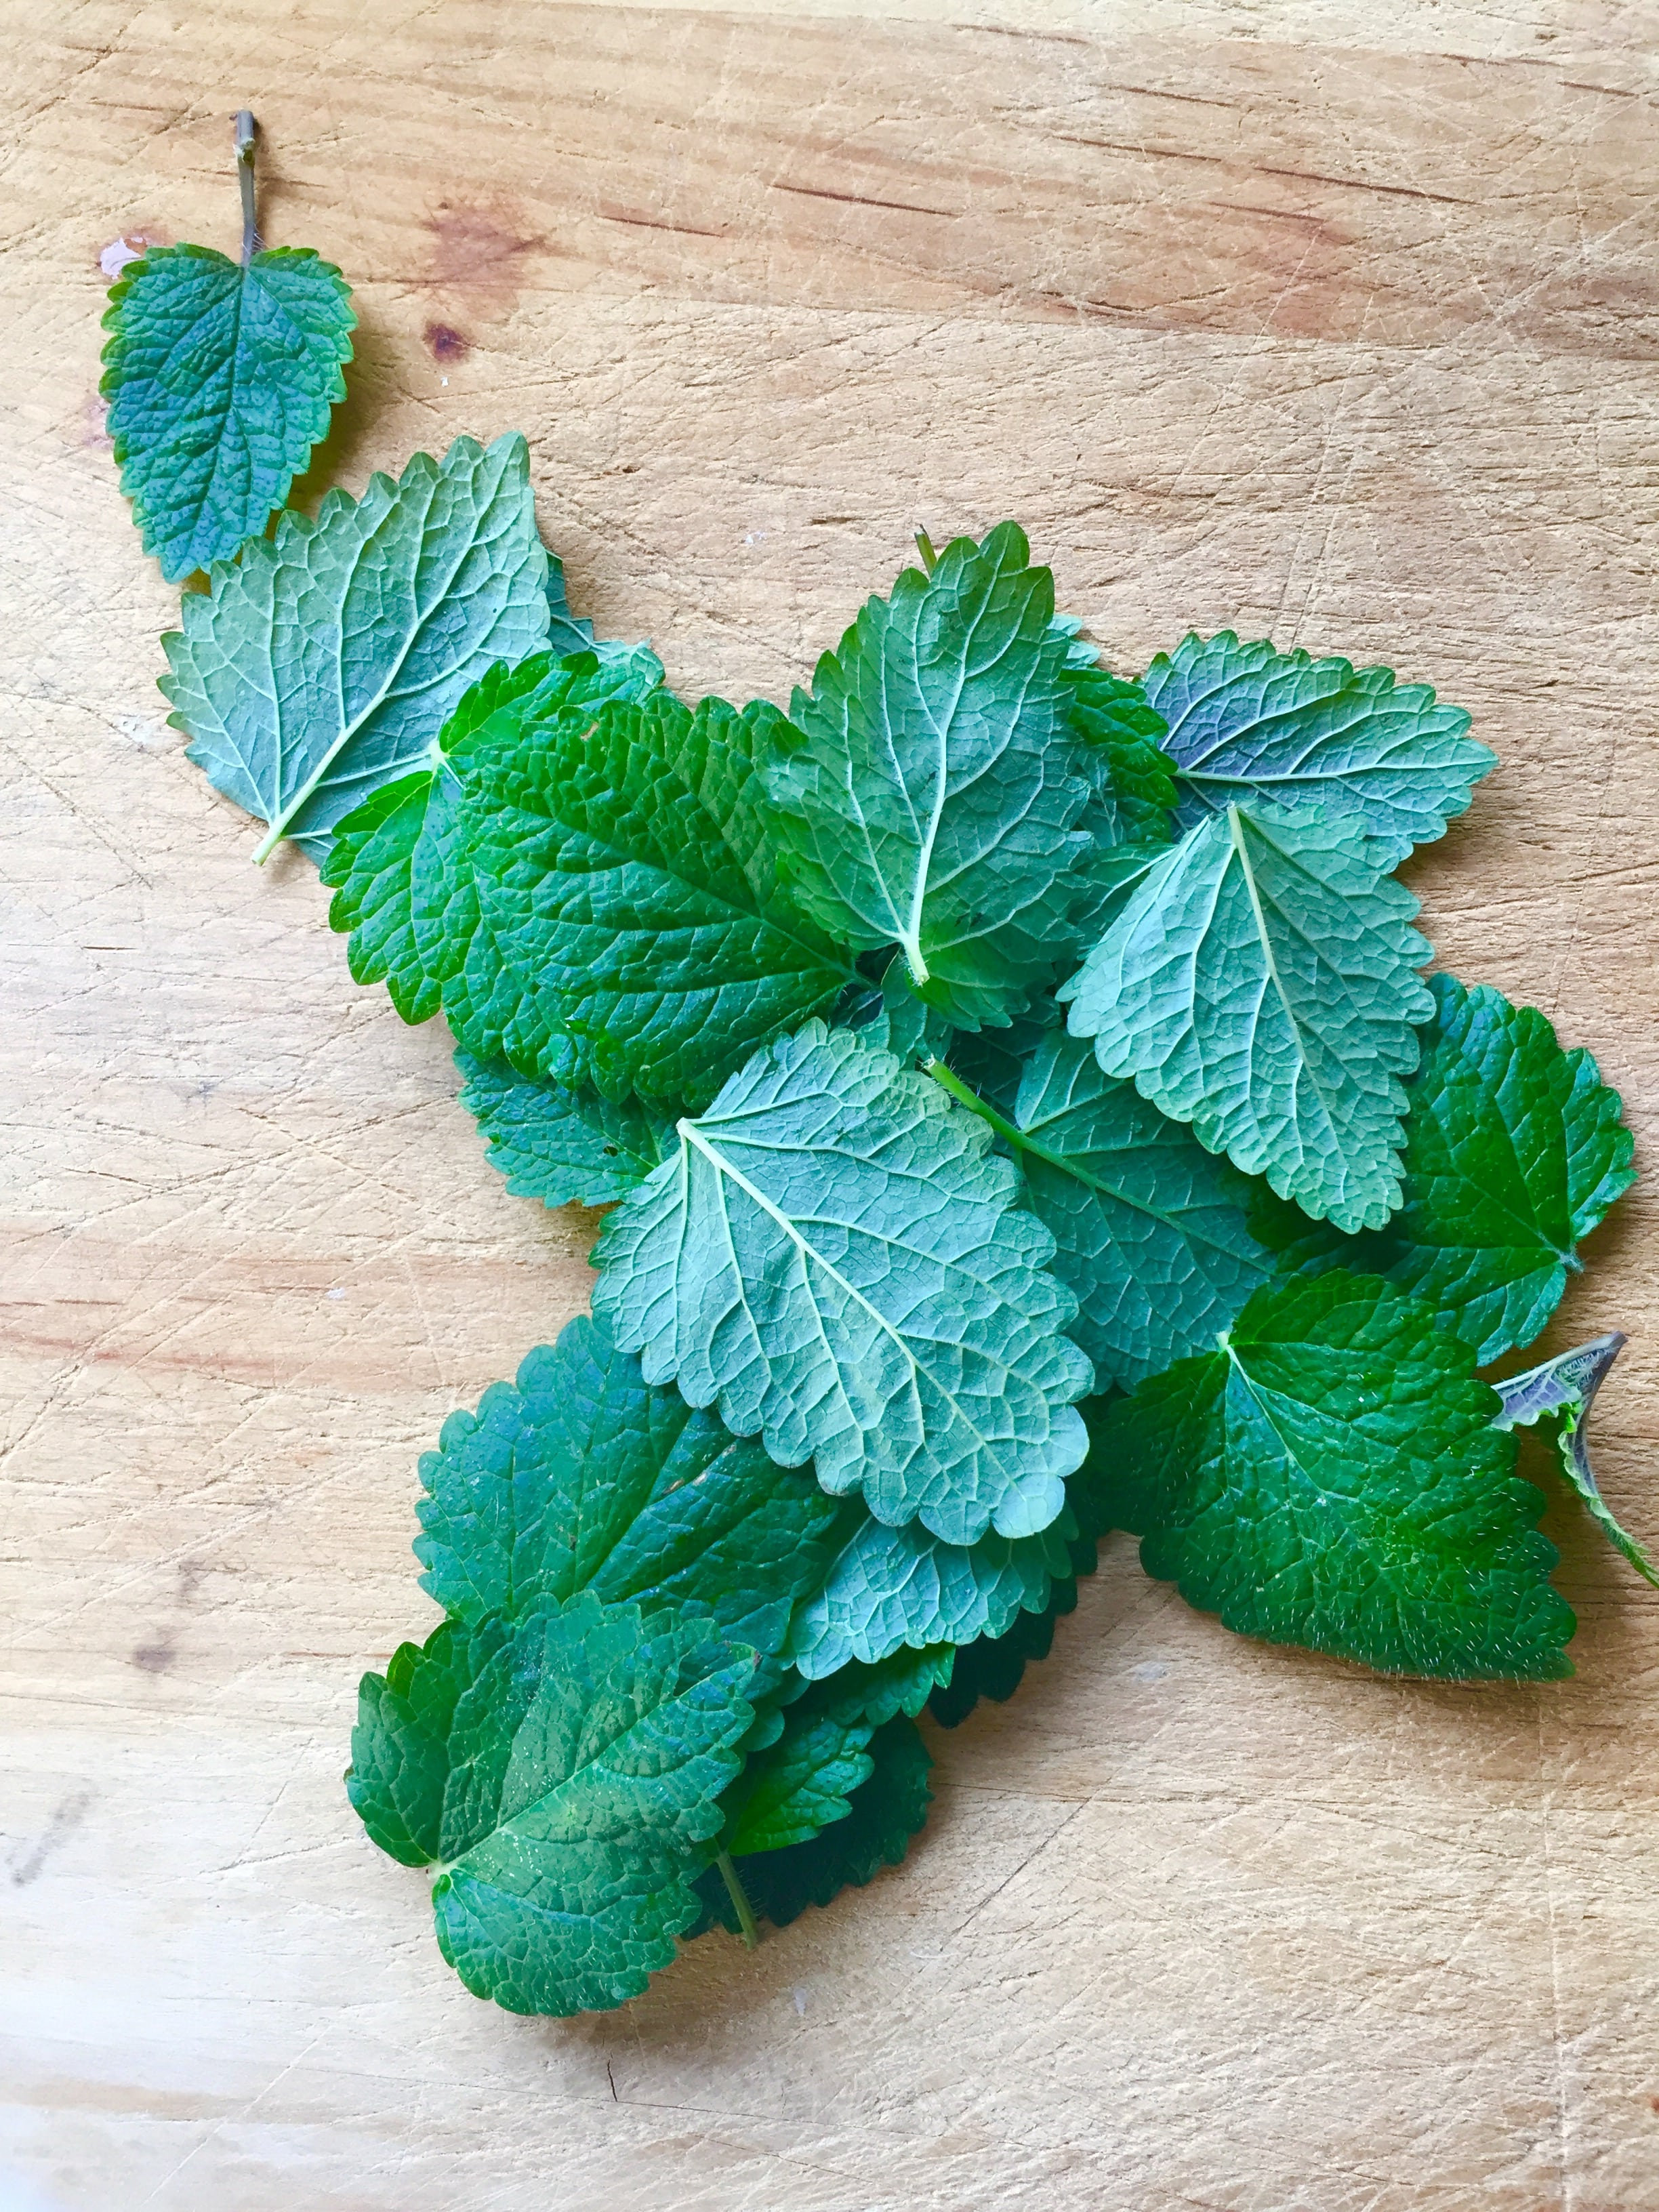 Private Yoga Instructor Santa Monica Los Angeles Brentwood Pacific Palisades Bel Air Venice Why I Love Lemon Balm